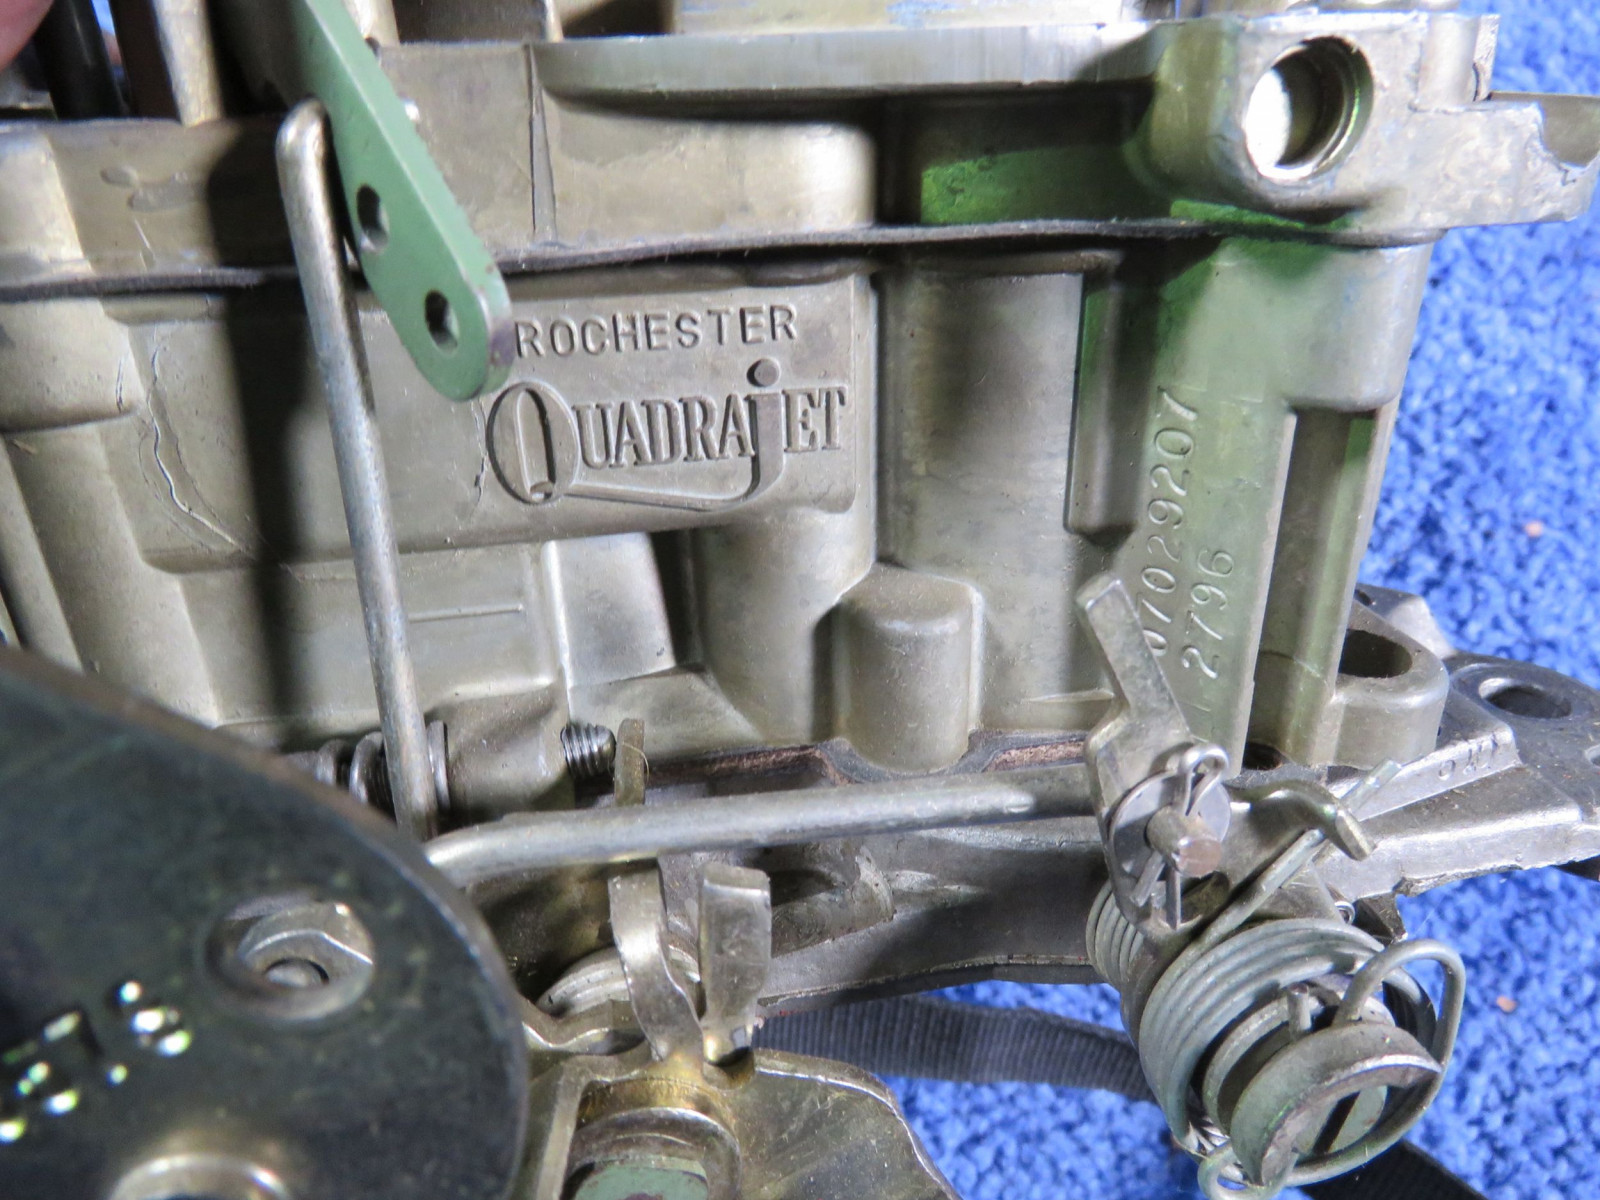 Quadra-Jet 4bbl Prepped Carburator for NHRA Run - Image 3